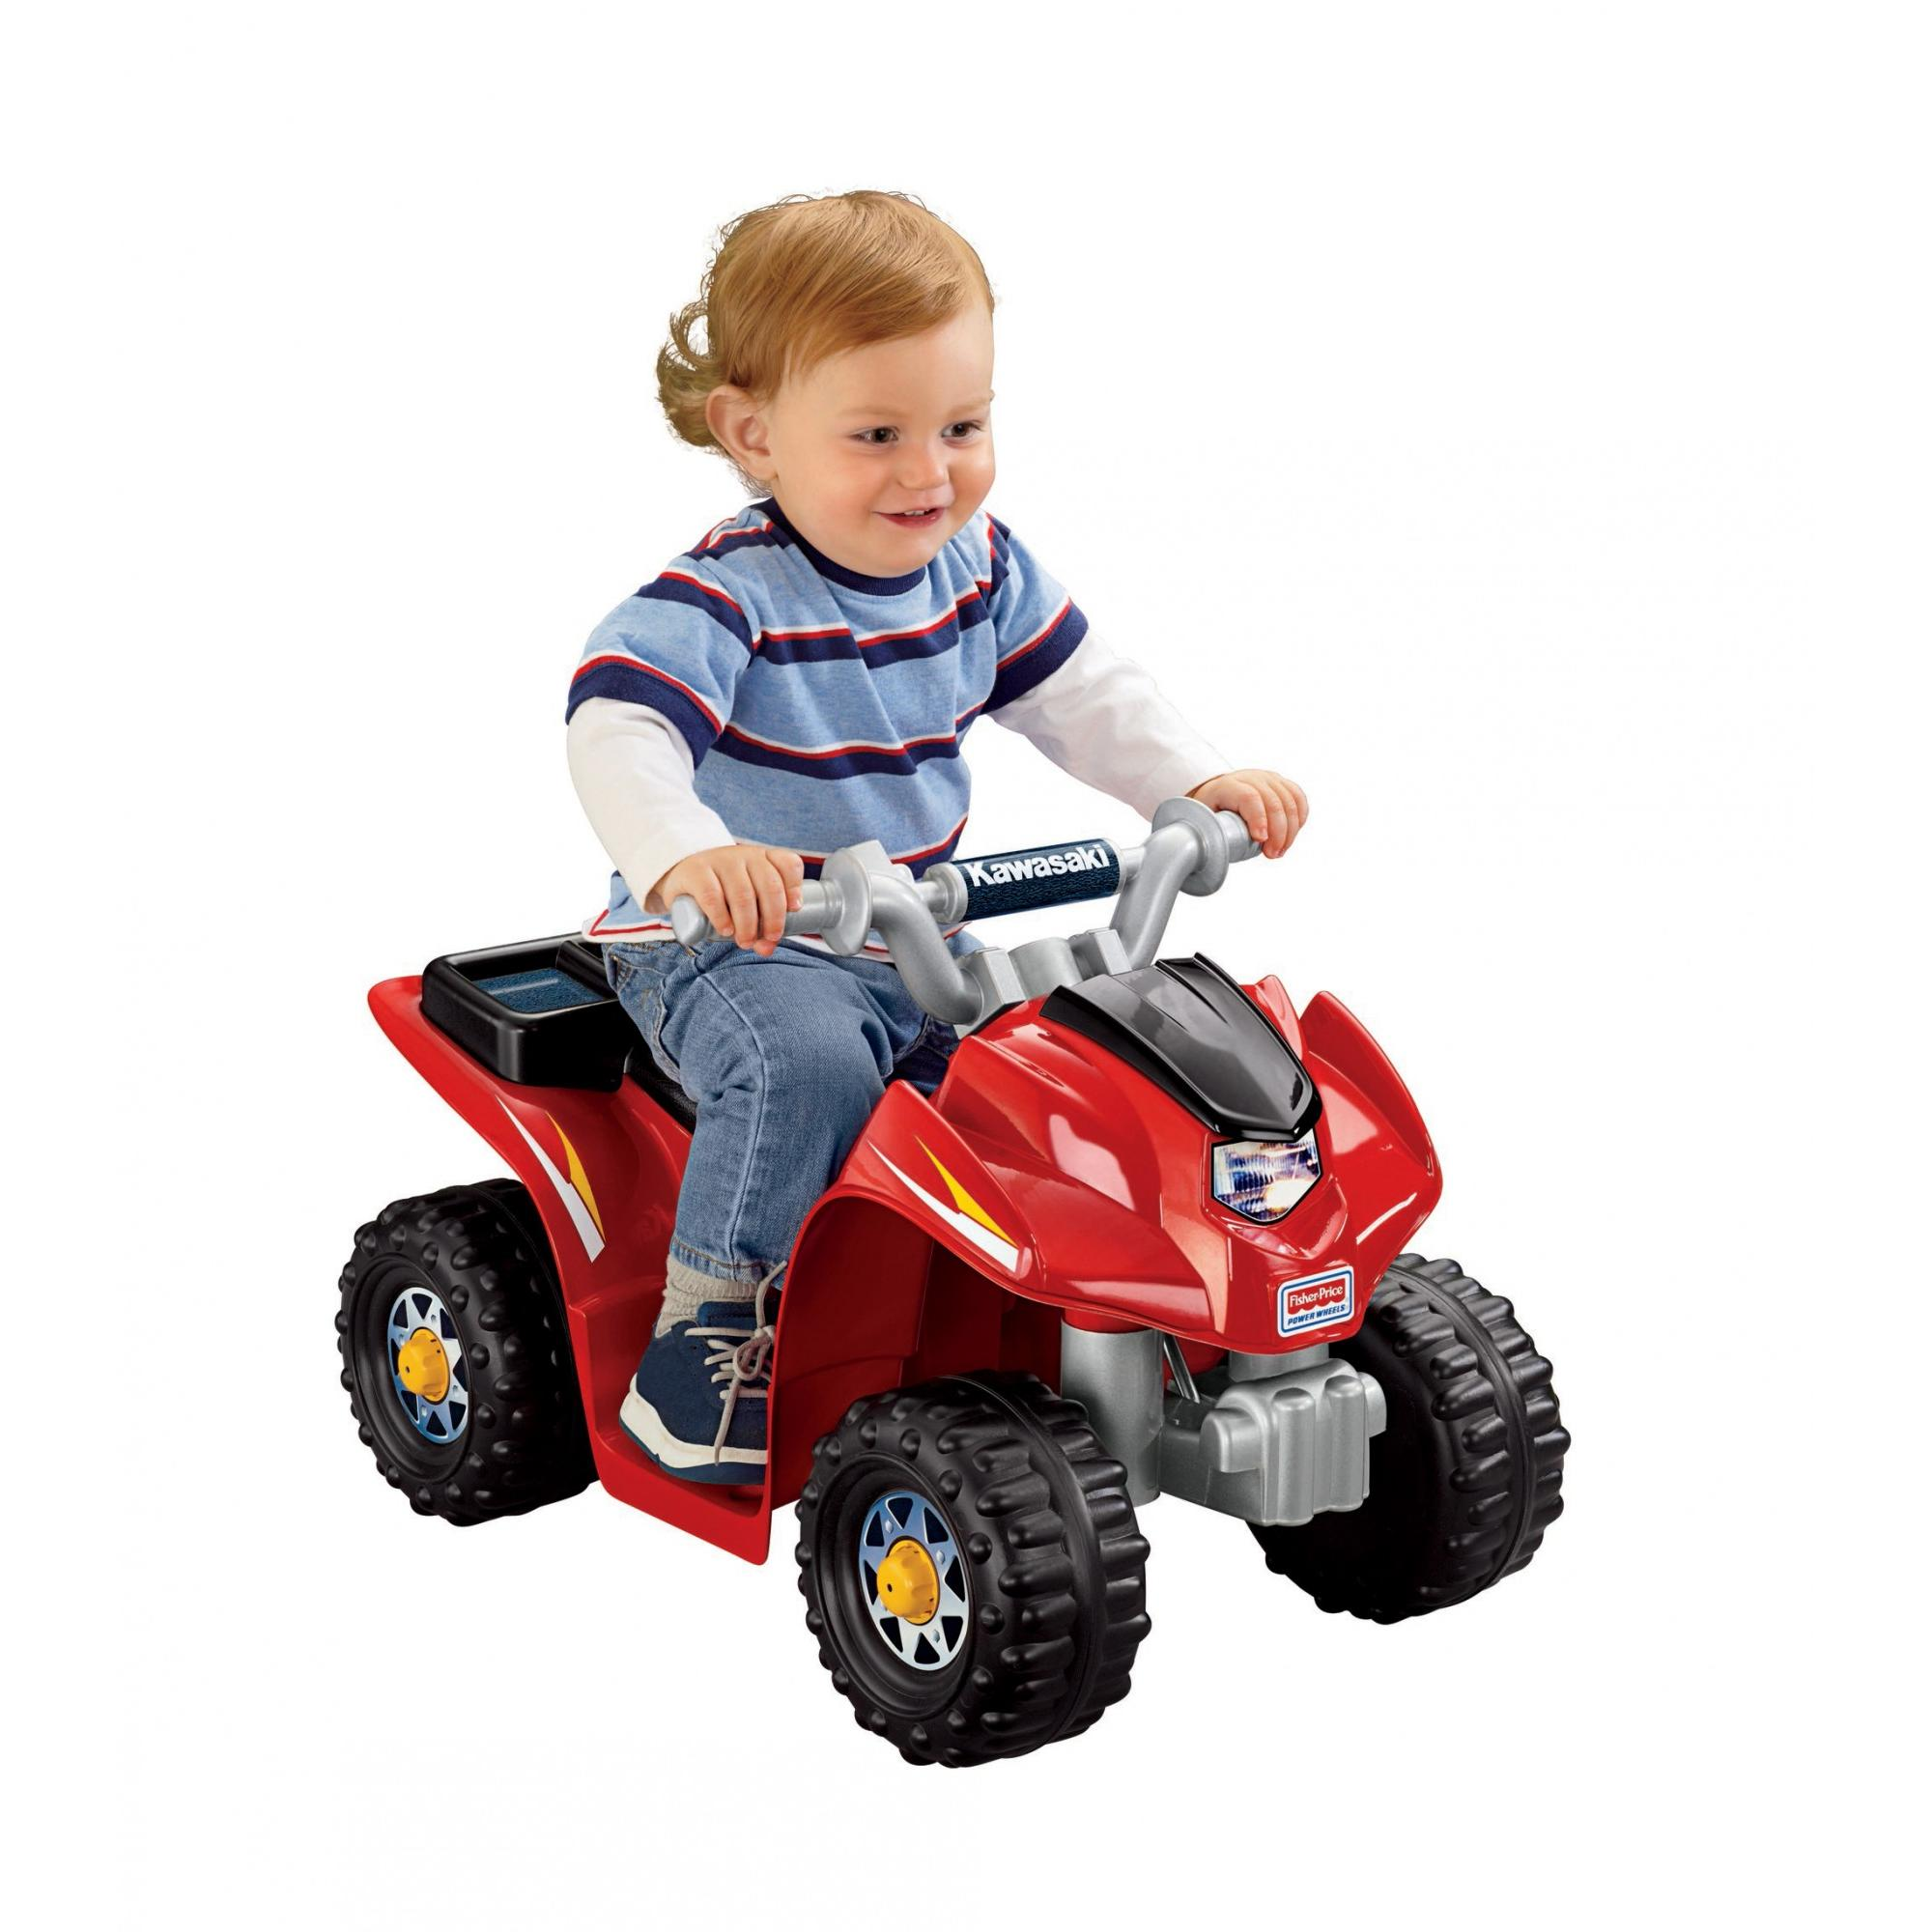 Power Wheels Lil' Kawasaki 6-Volt Battery-Powered Ride-On